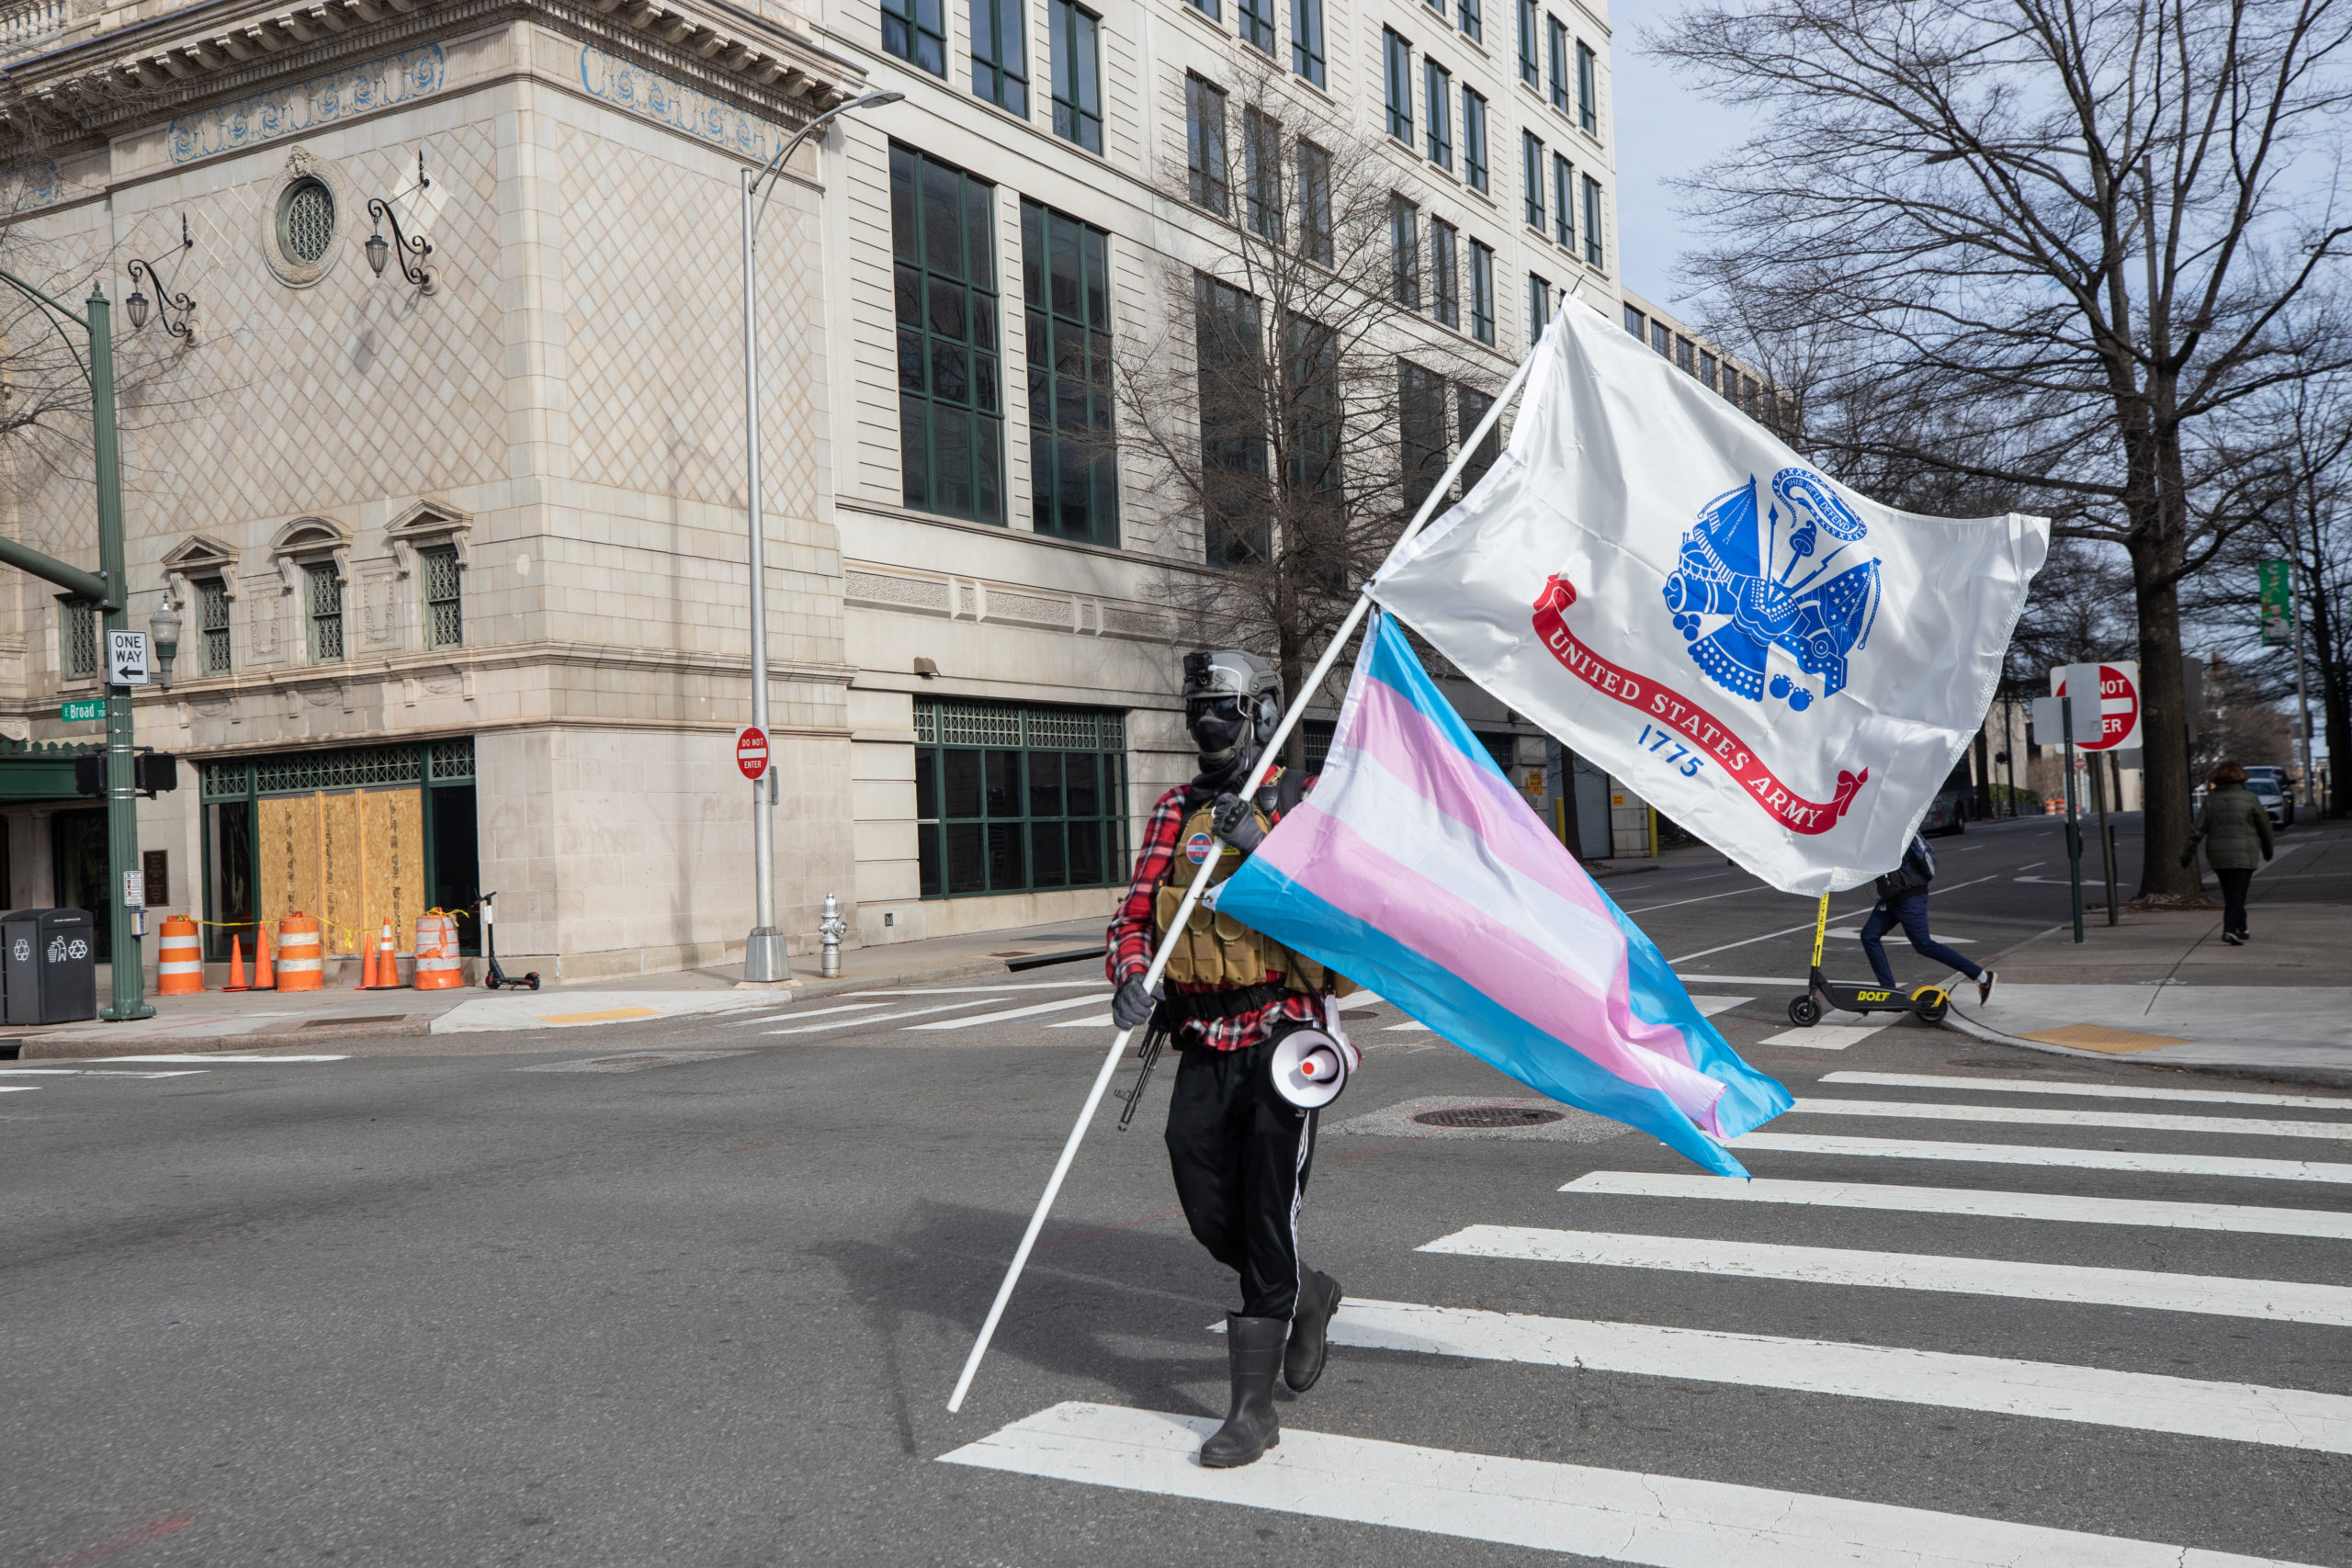 An armed demonstrator held a transgender flag and an Army flag during Lobby Day demonstrations in Richmond, Virginia on January 18, 2021. (Kaylee Greenlee - Daily Caller News Foundation)